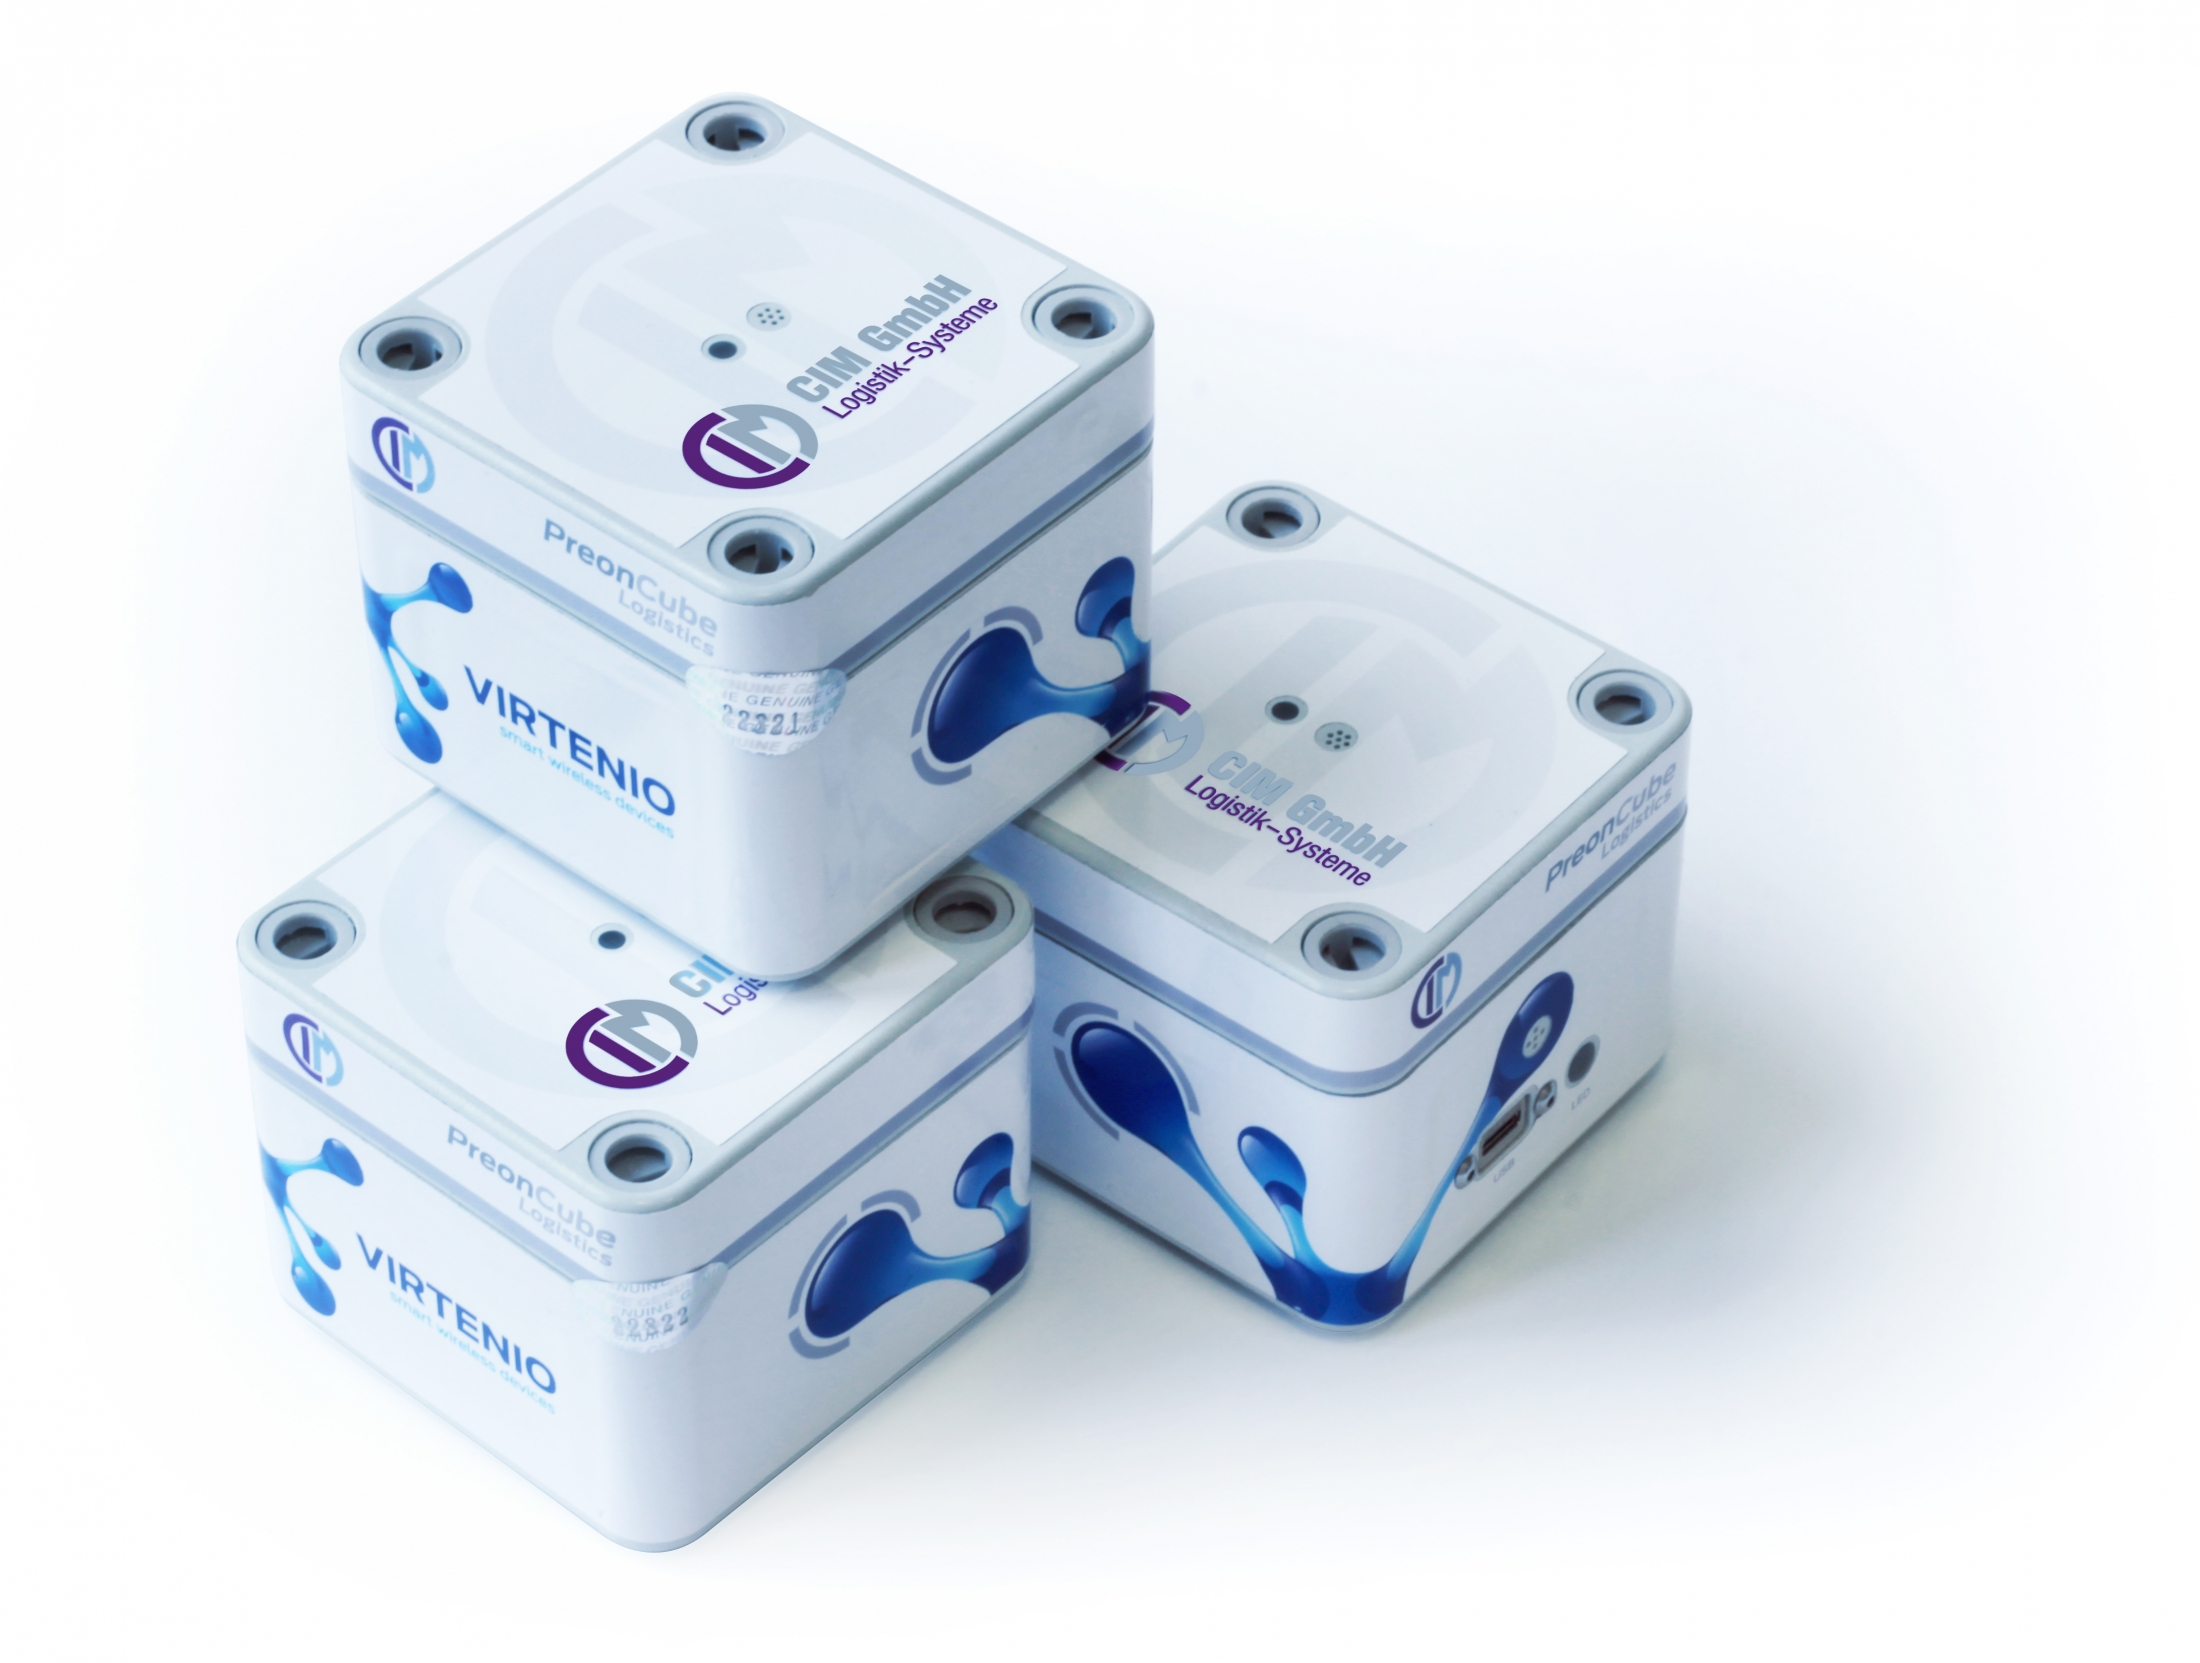 The sensor cubes used by CIM can measure temperature, humidity, acceleration, and so on